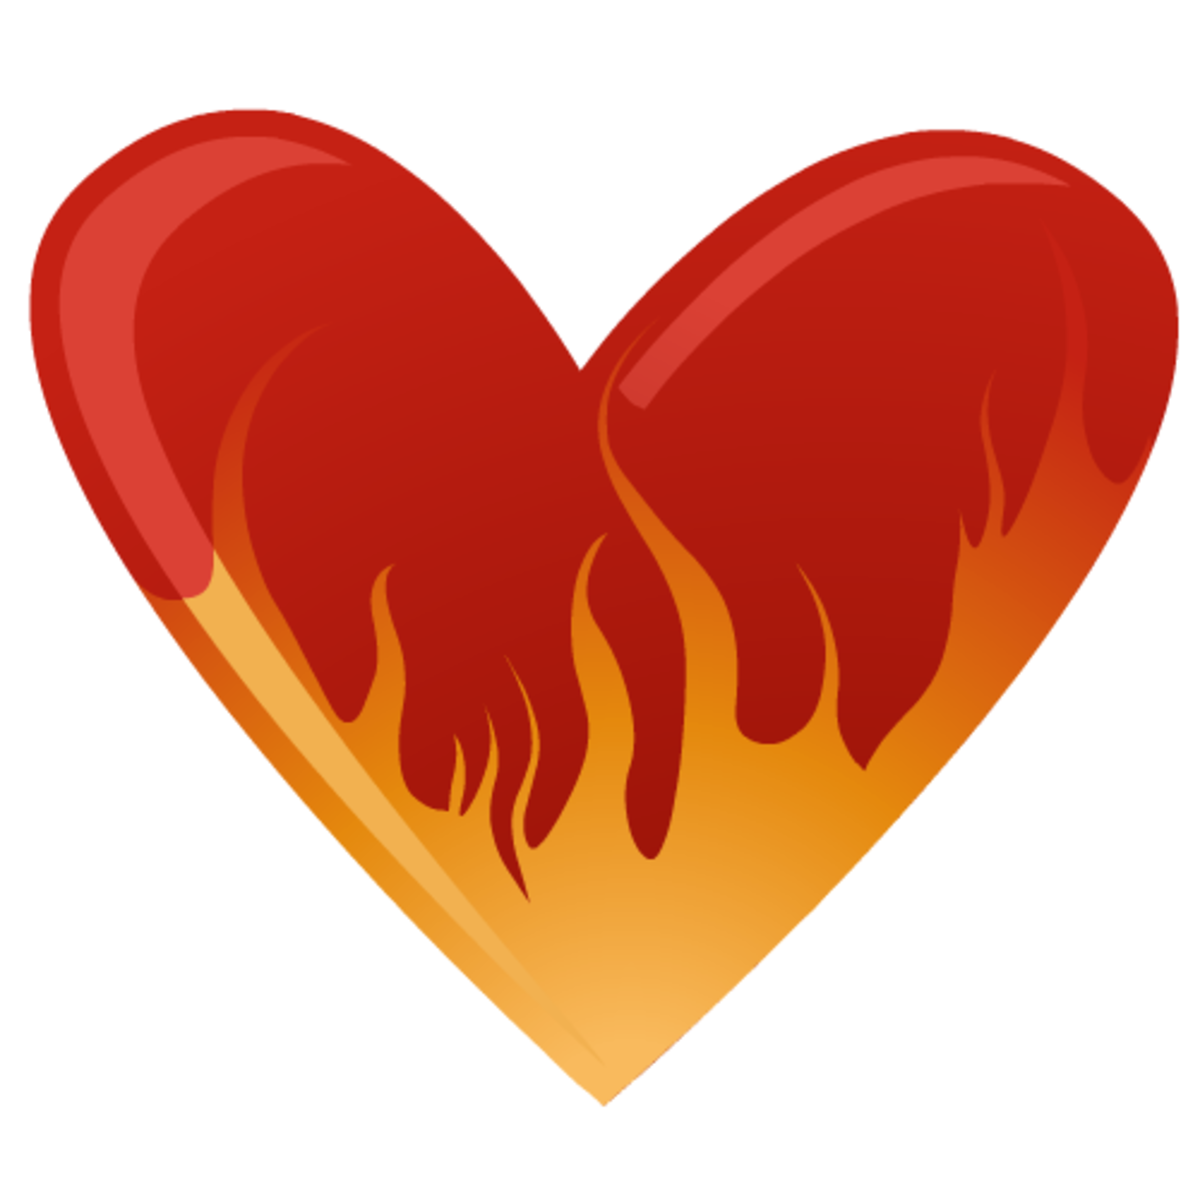 Heart on fire clip art